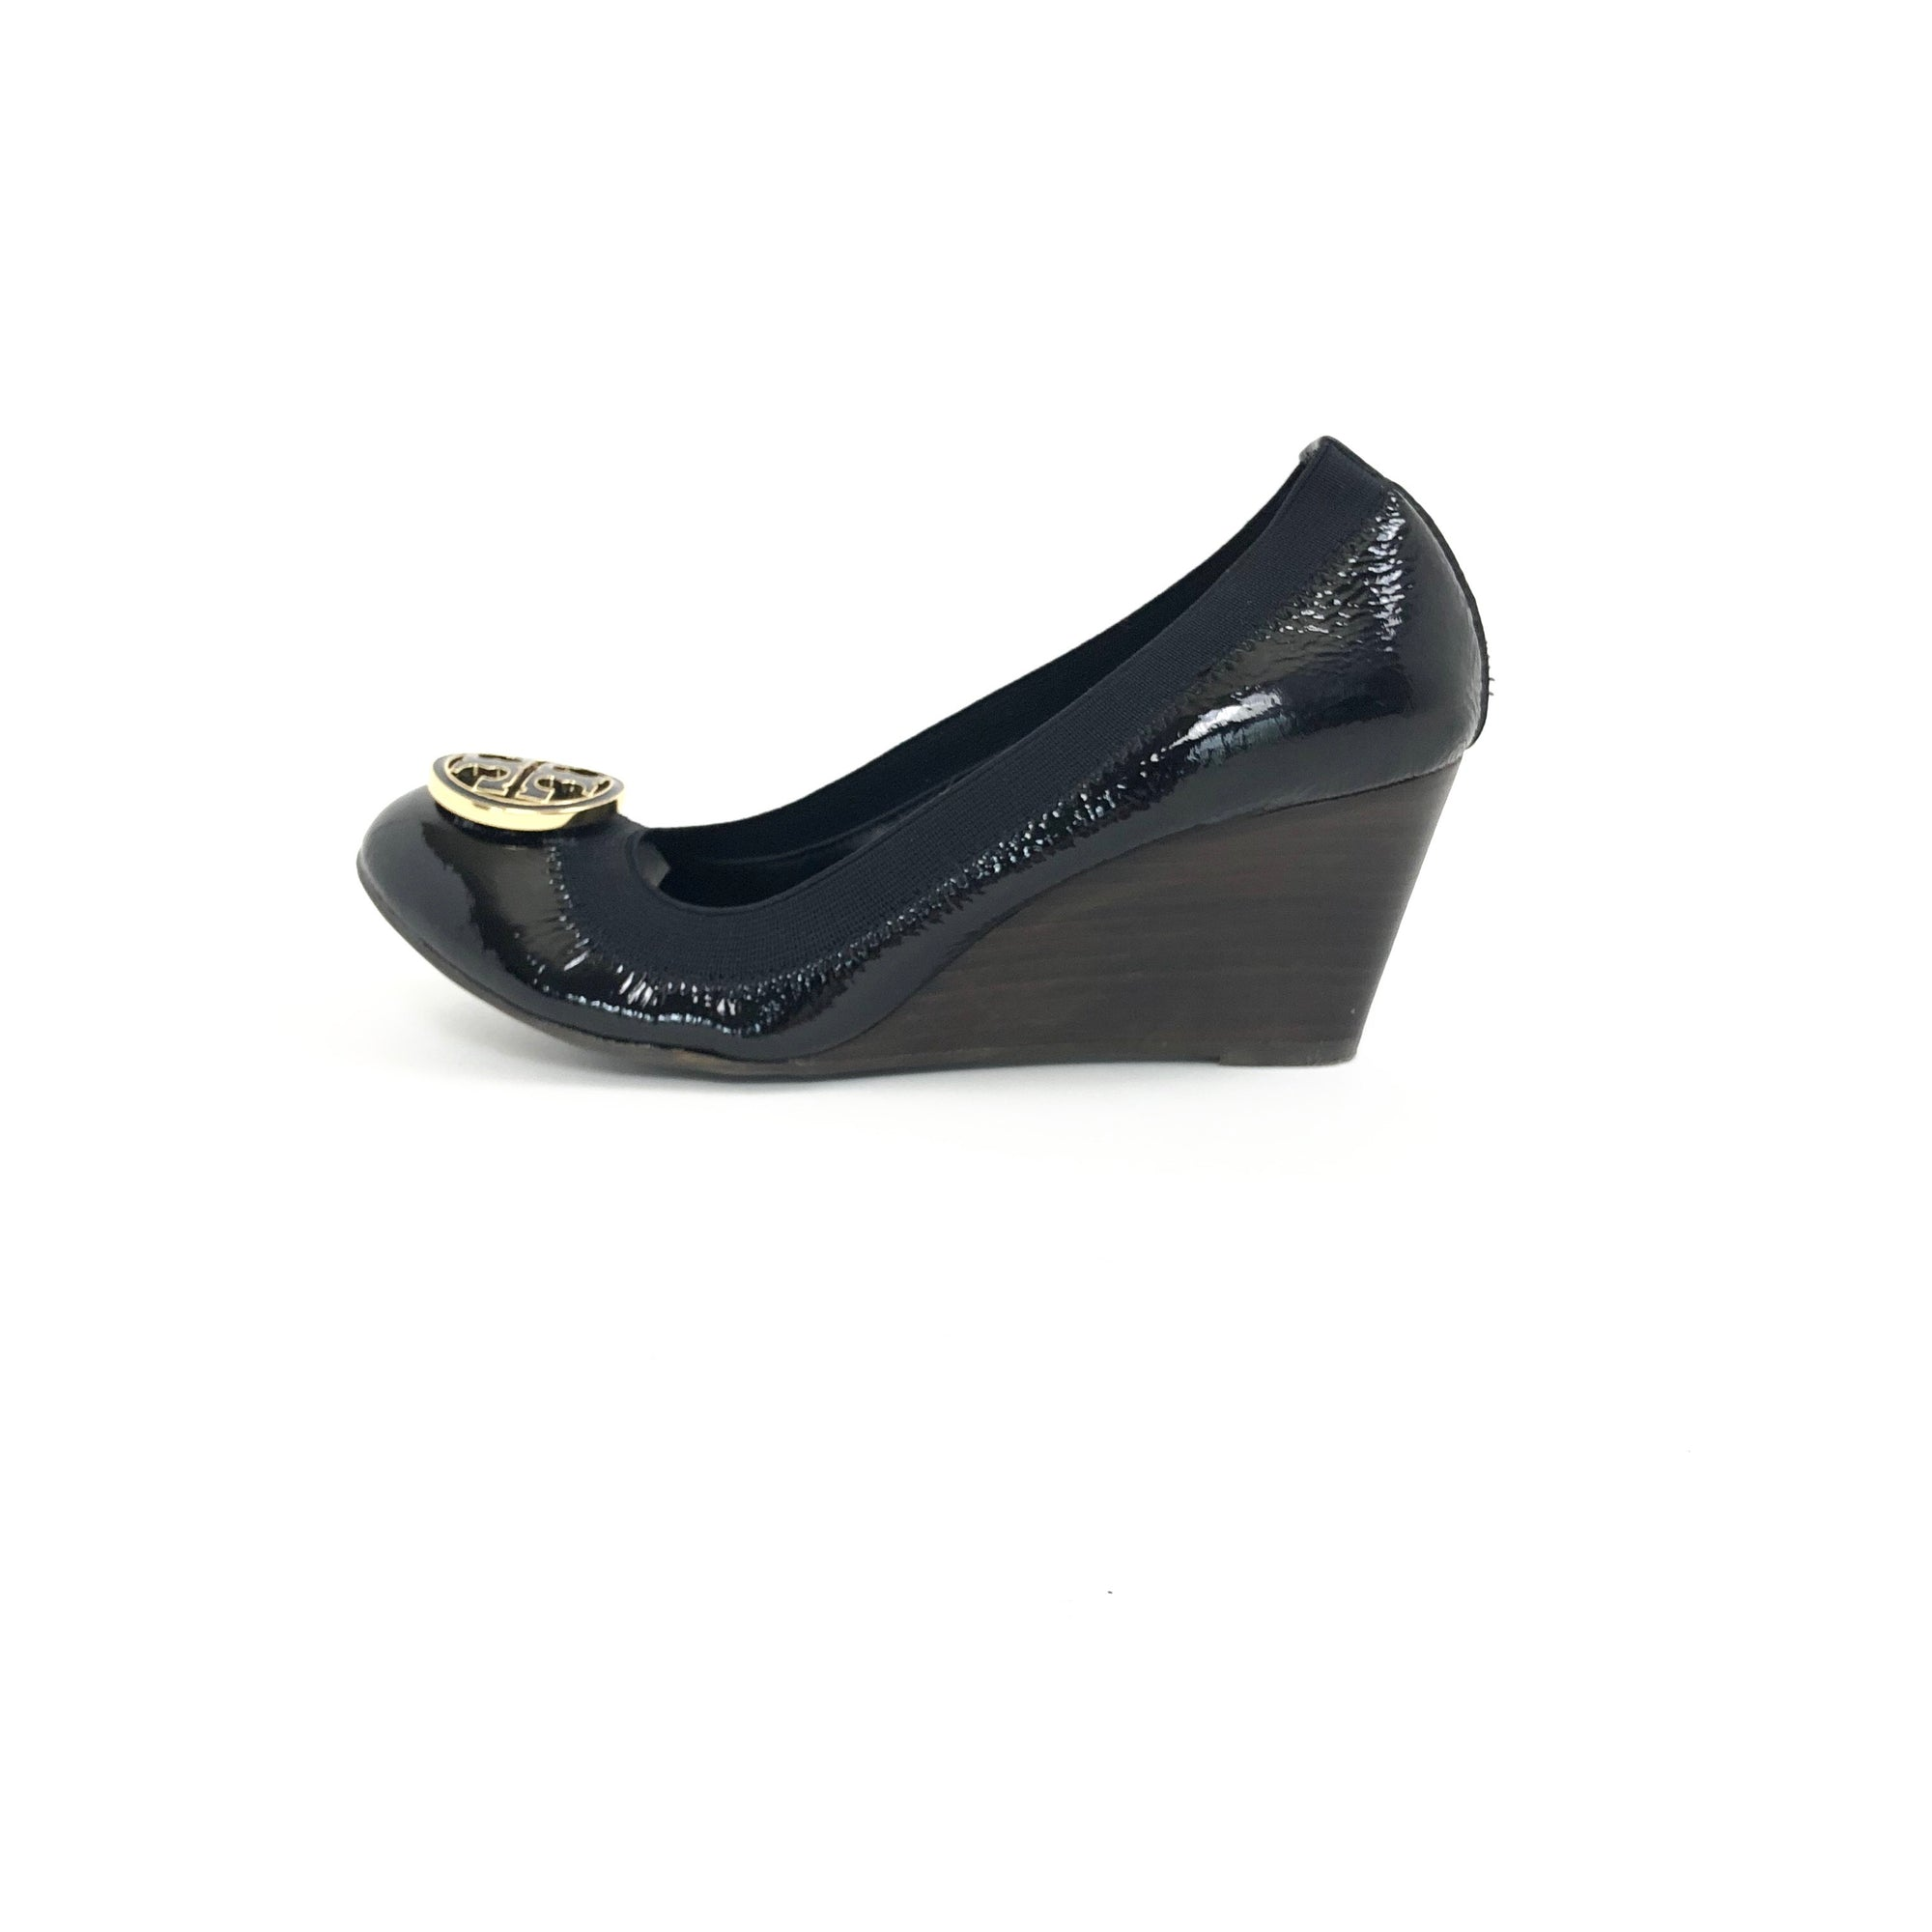 Tory Burch Caroline Patent Wedge